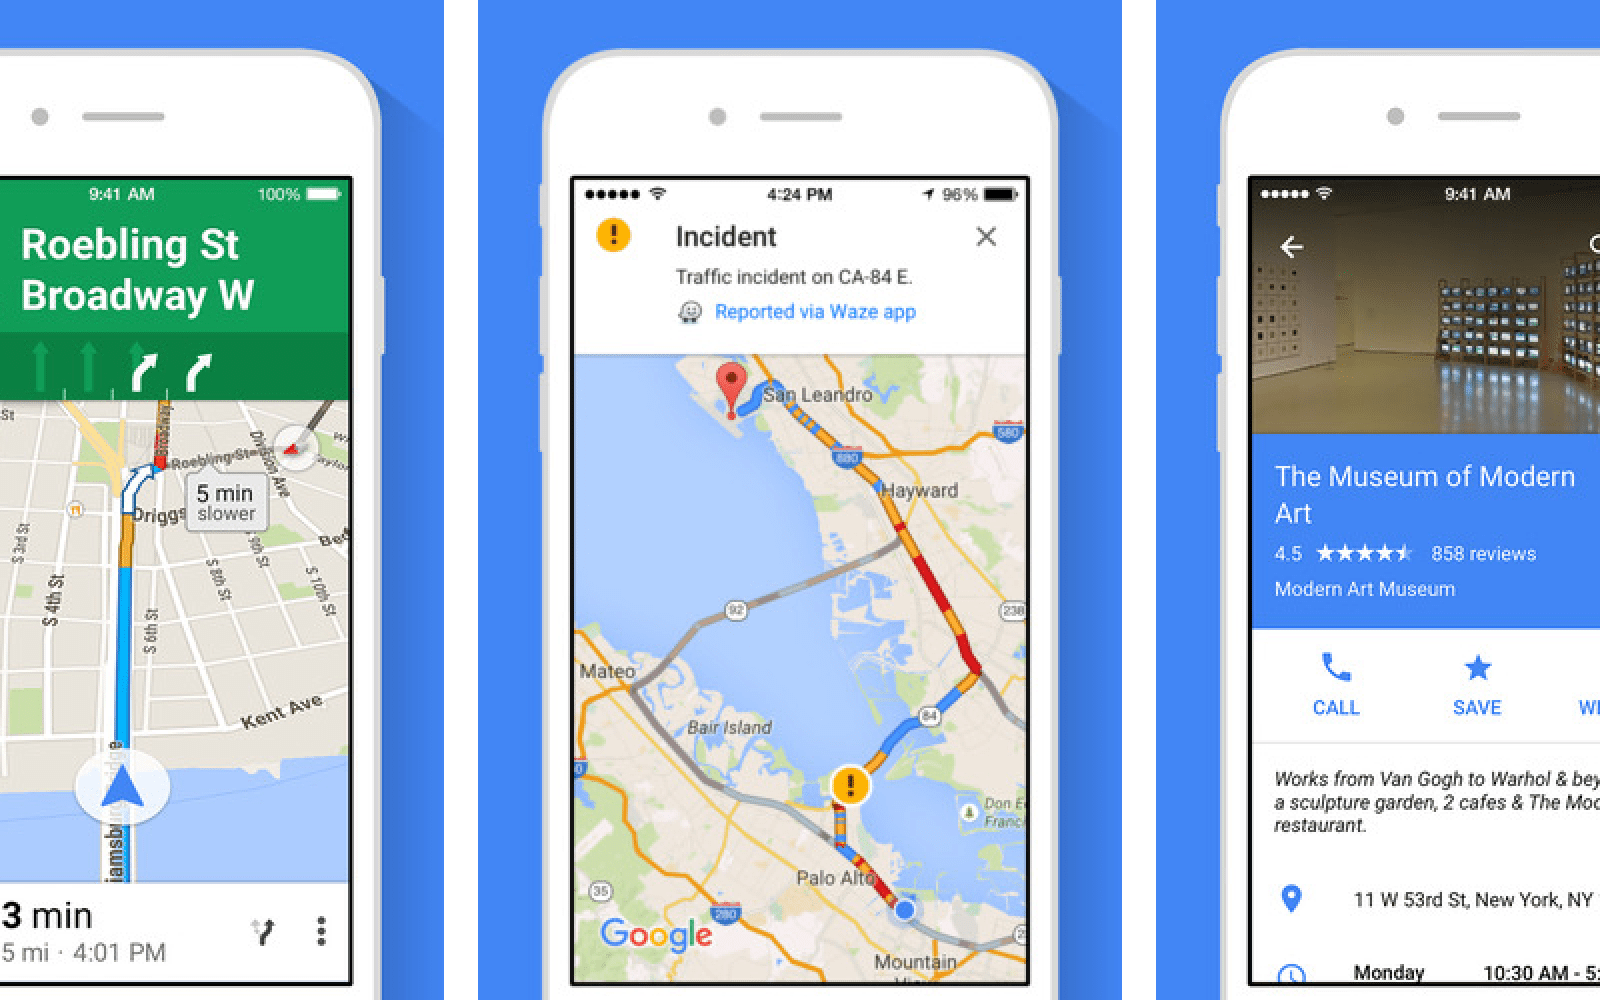 Google Maps comes to the Apple Watch in latest iOS app ... on online maps, aerial maps, android maps, ipad maps, gogole maps, waze maps, bing maps, msn maps, amazon fire phone maps, googlr maps, goolge maps, search maps, iphone maps, topographic maps, microsoft maps, googie maps, aeronautical maps, gppgle maps, road map usa states maps, stanford university maps,